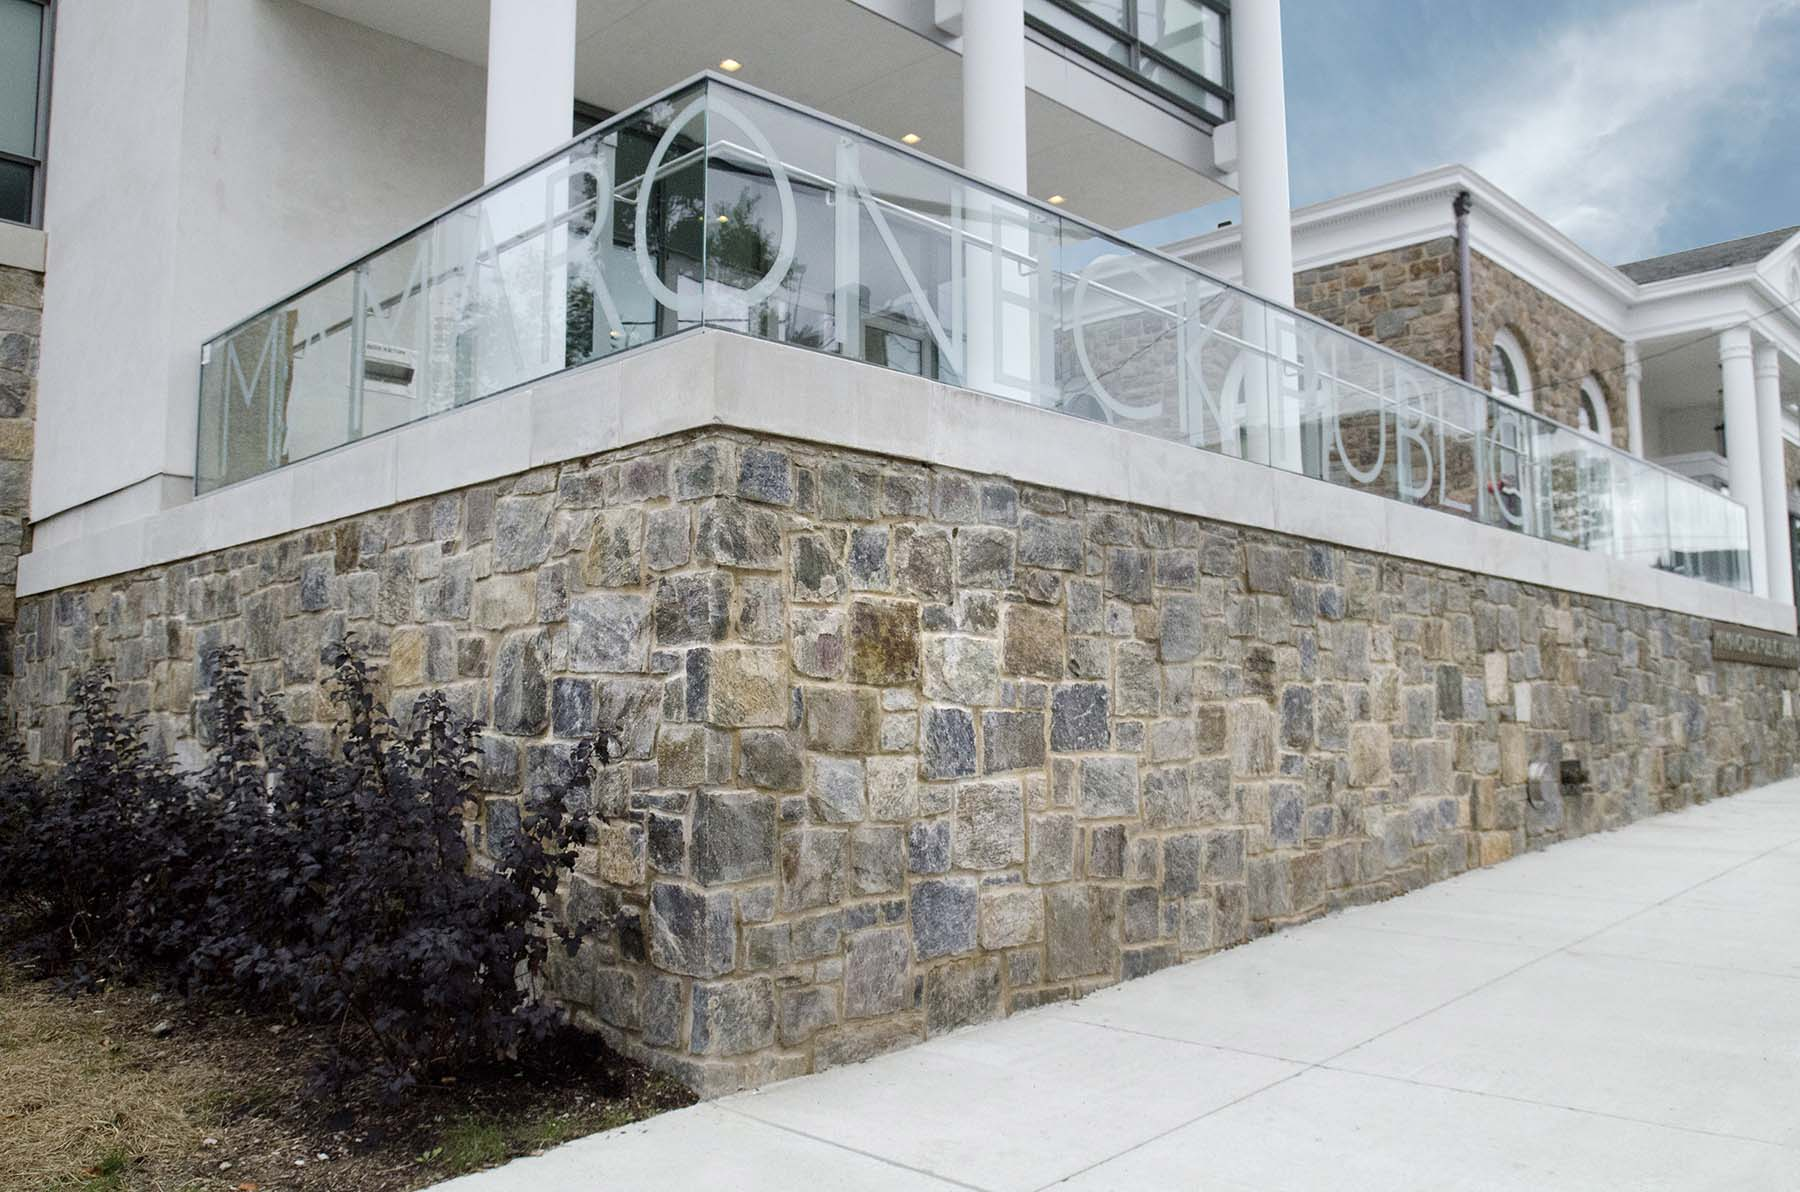 Natural stone retaining wall constructed from 1763 granite